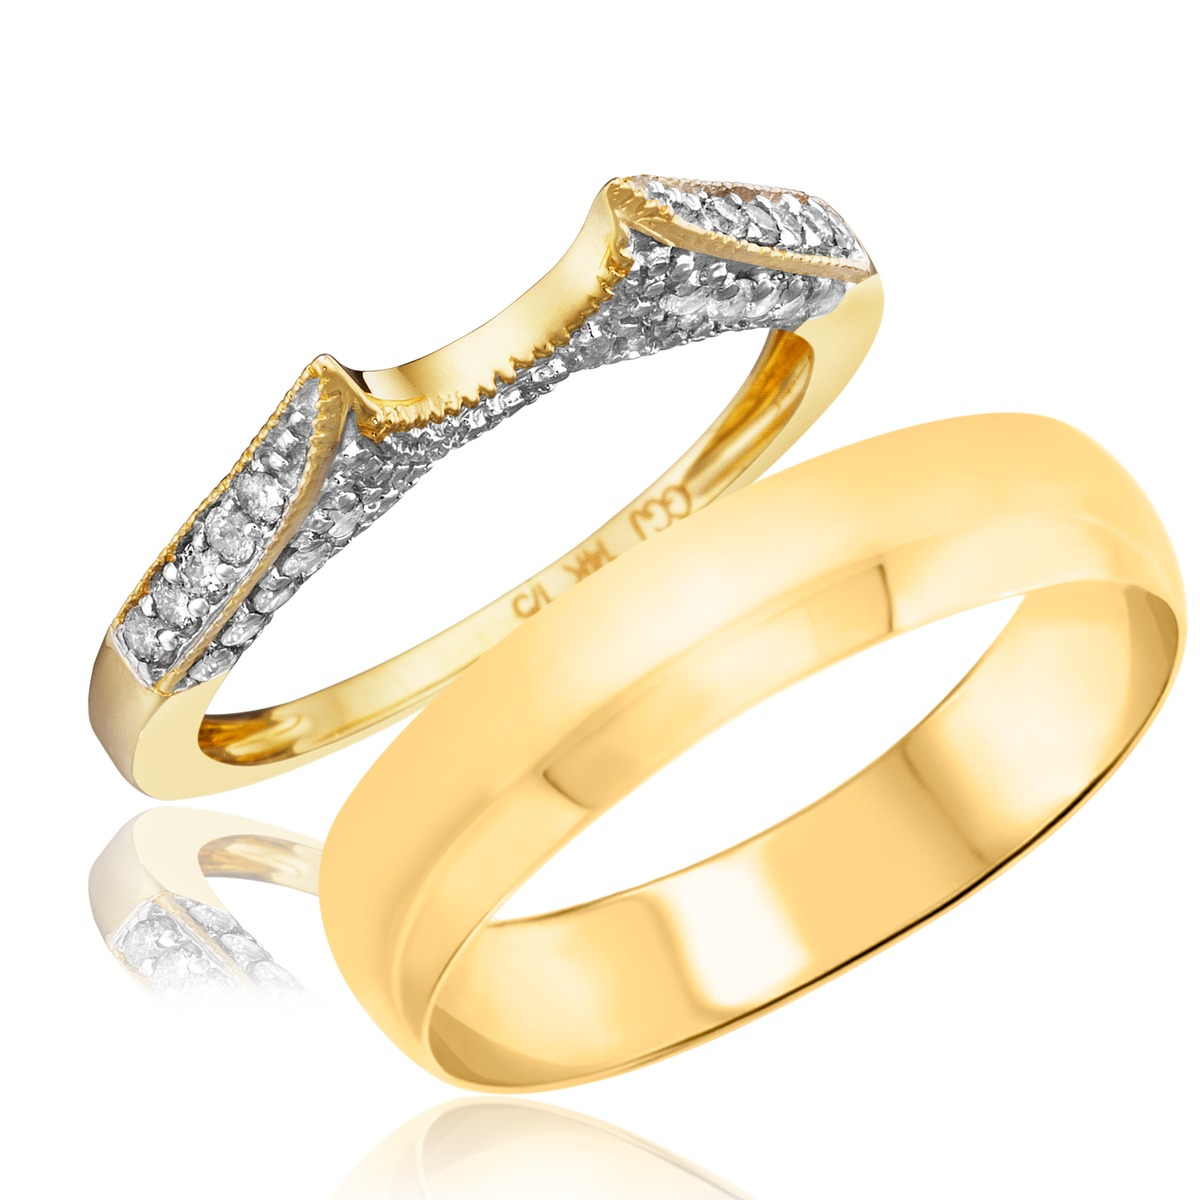 1/4 Carat T.W. Round Cut Diamond His and Hers Wedding Band Set 14K Yellow Gold